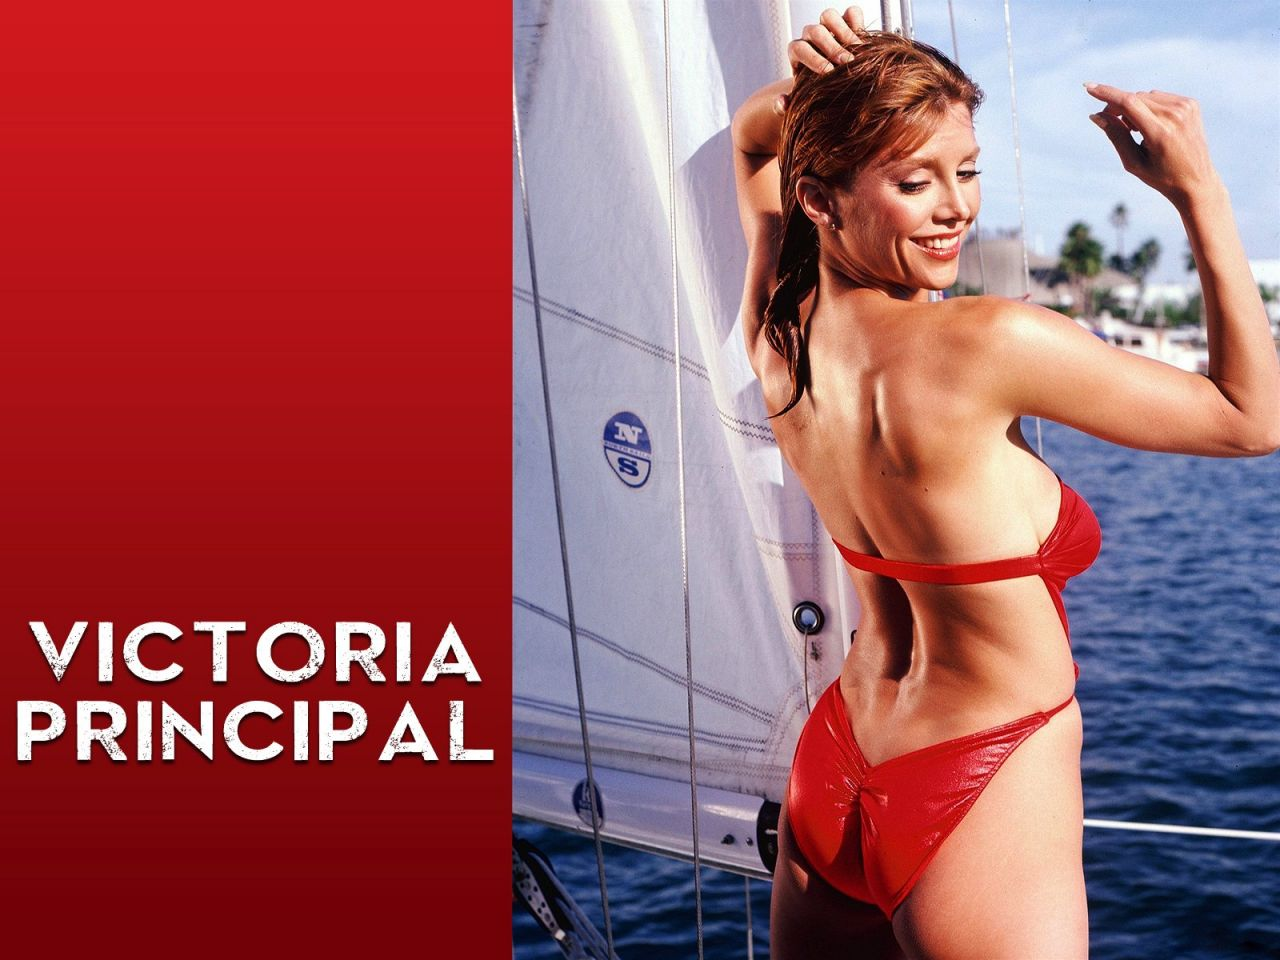 Victoria Principal Hot Wallpapers (+3)